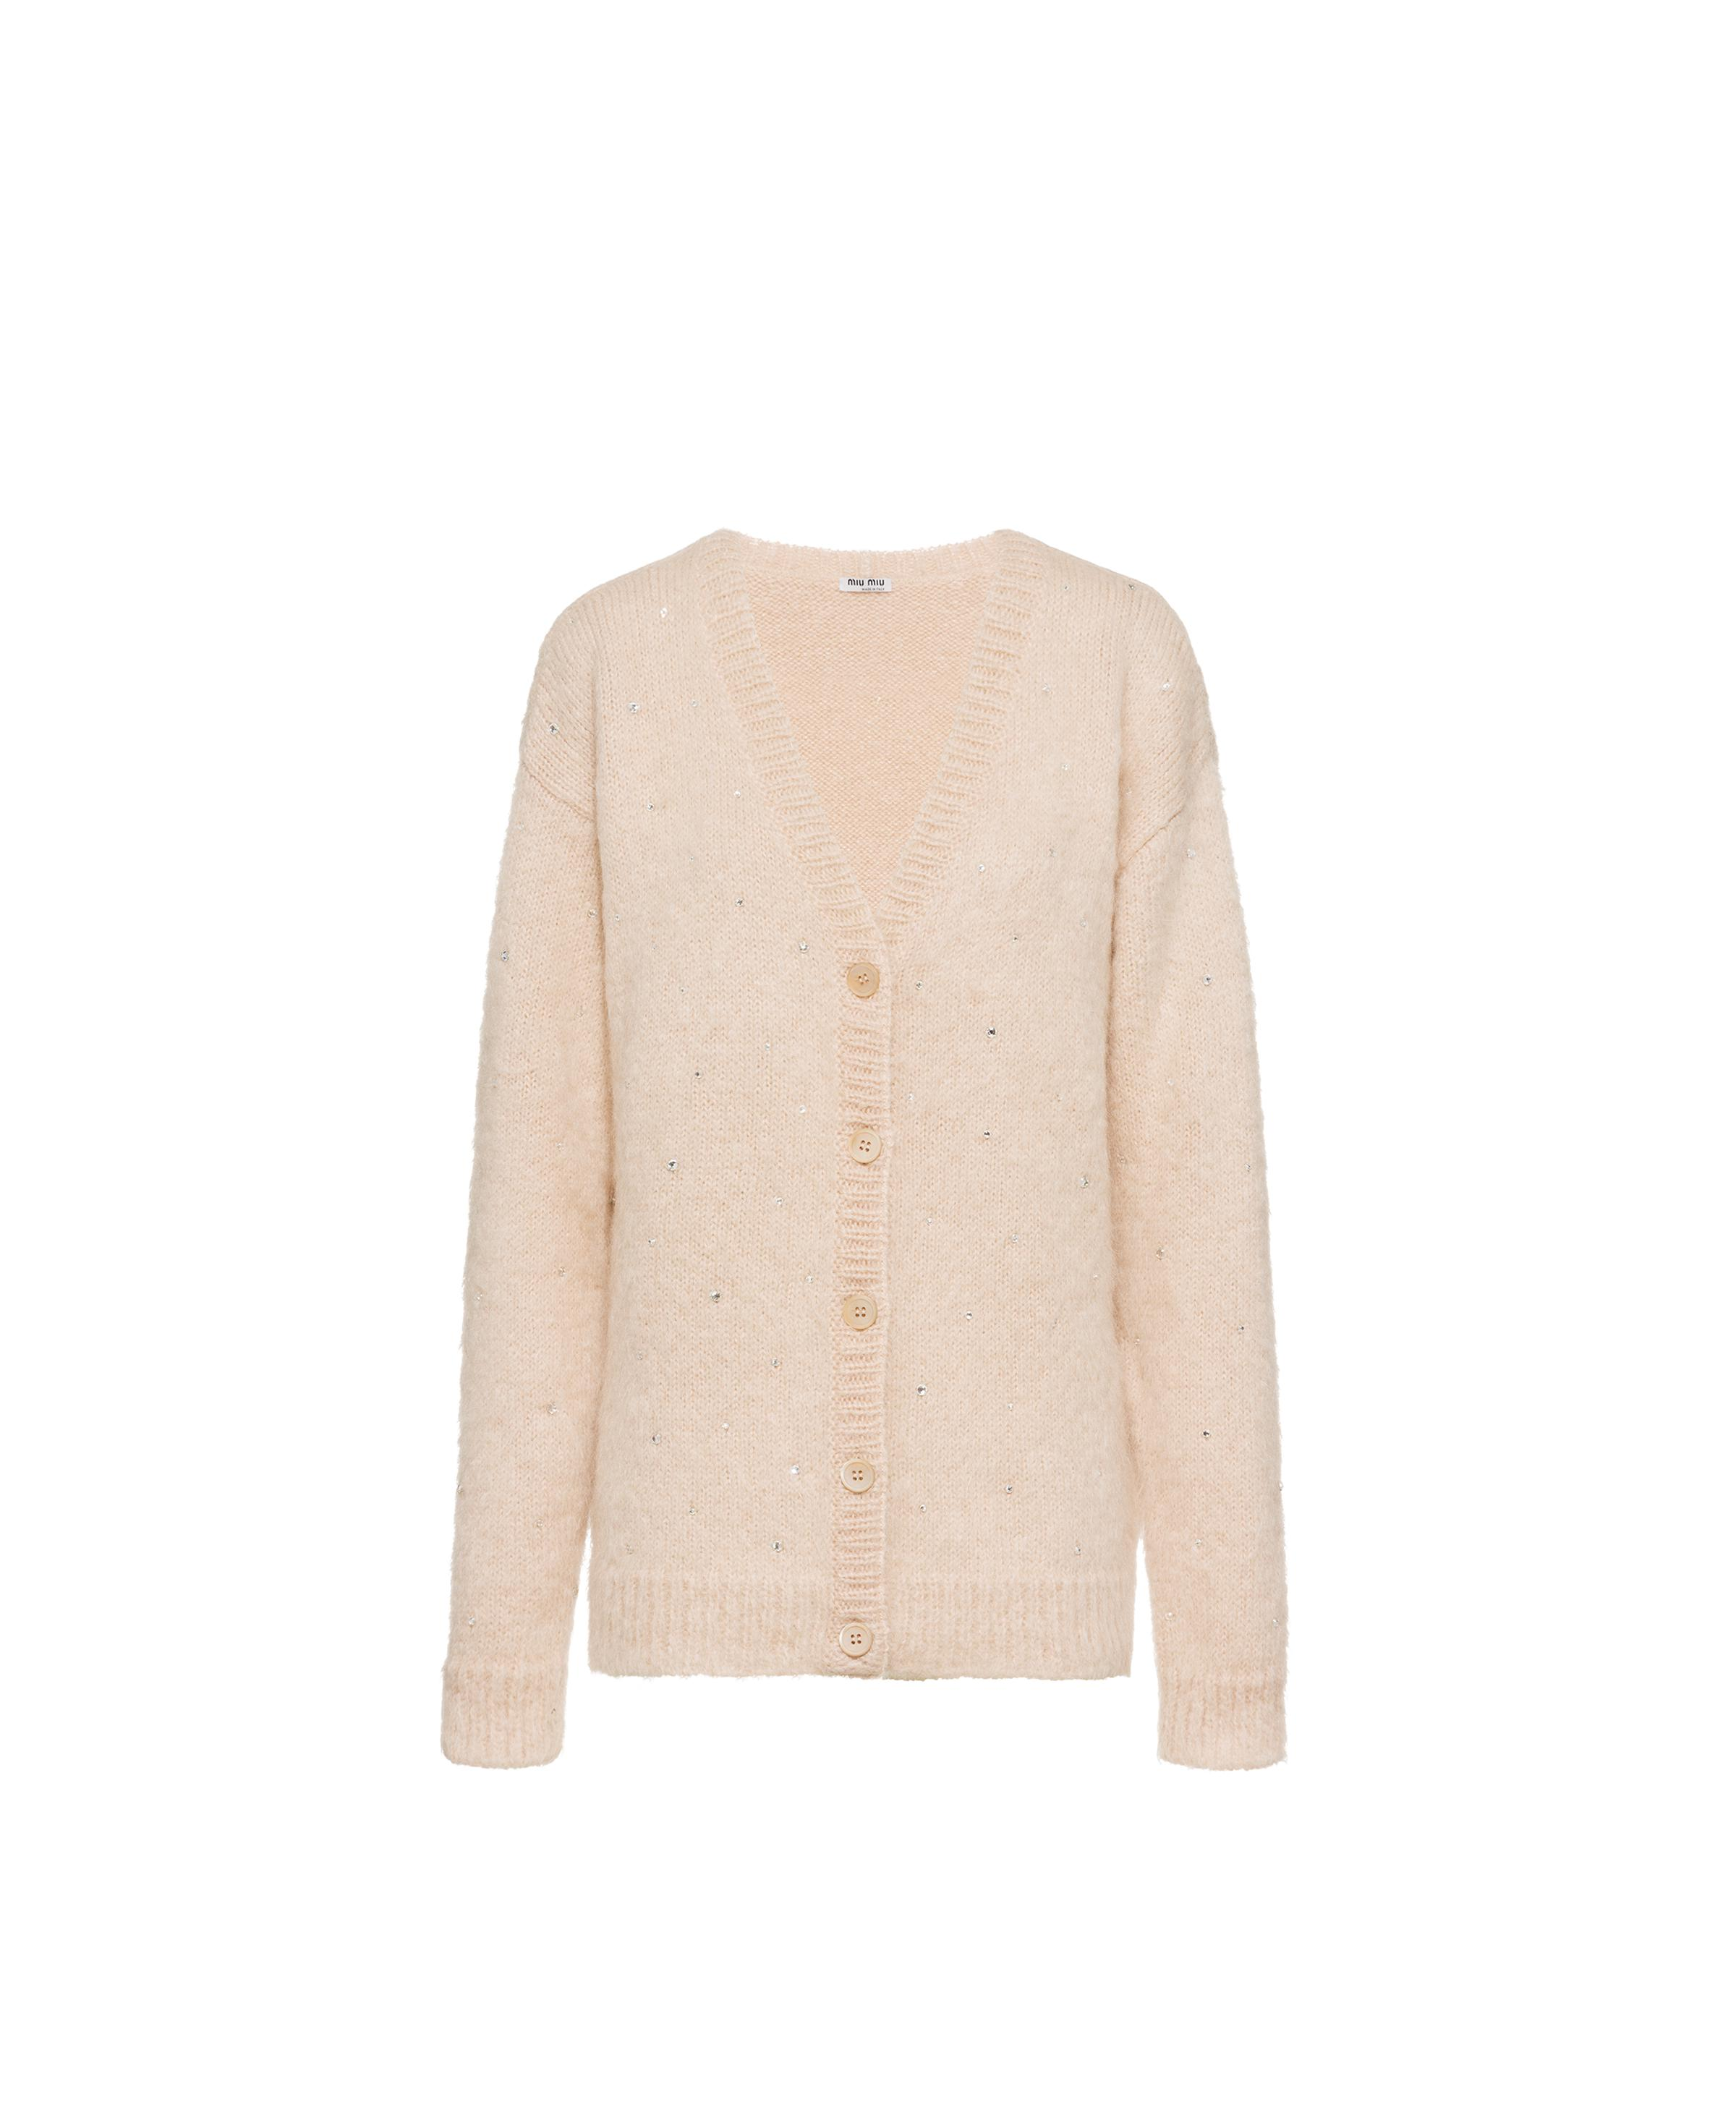 Embroidered Mohair Cardigan Women Nude Beige